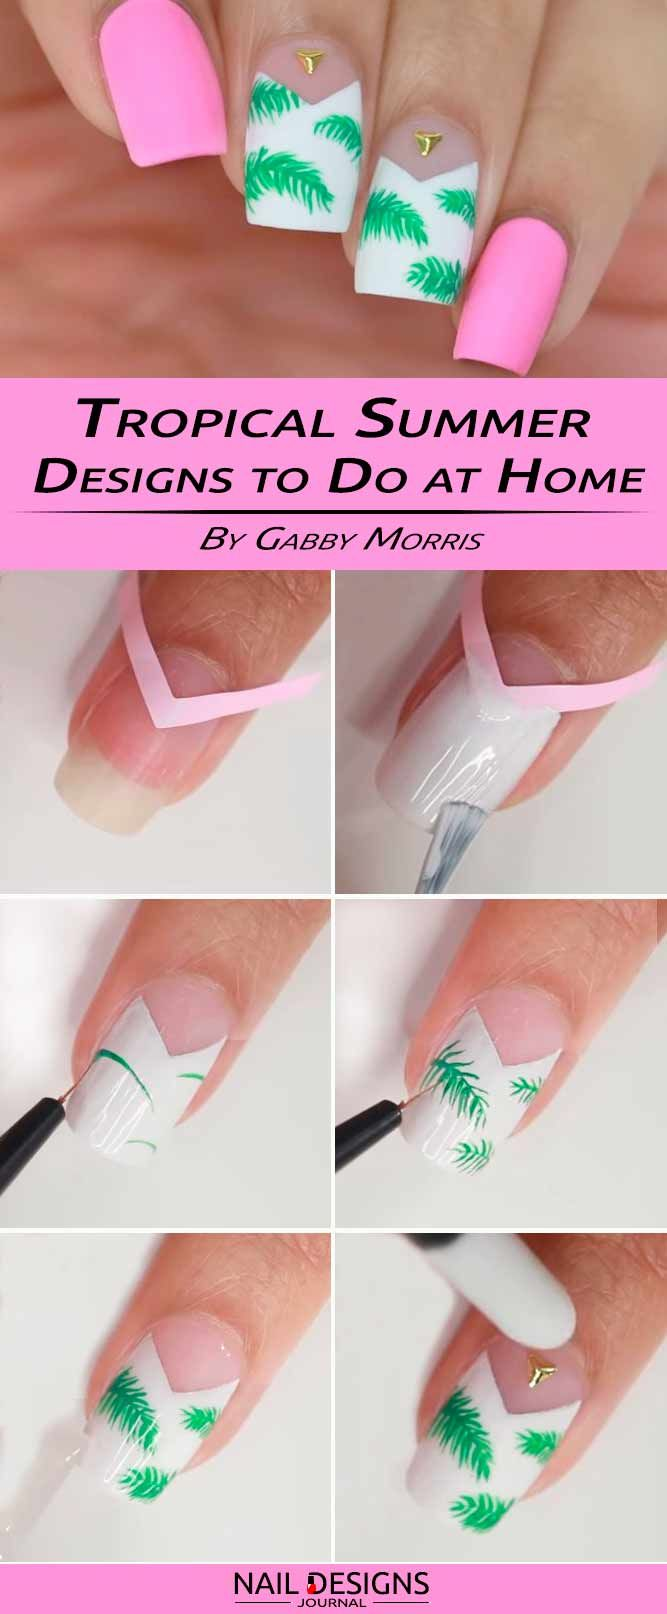 12 Step By Step Tutorials How To Do Nail Designs At Home Manicure